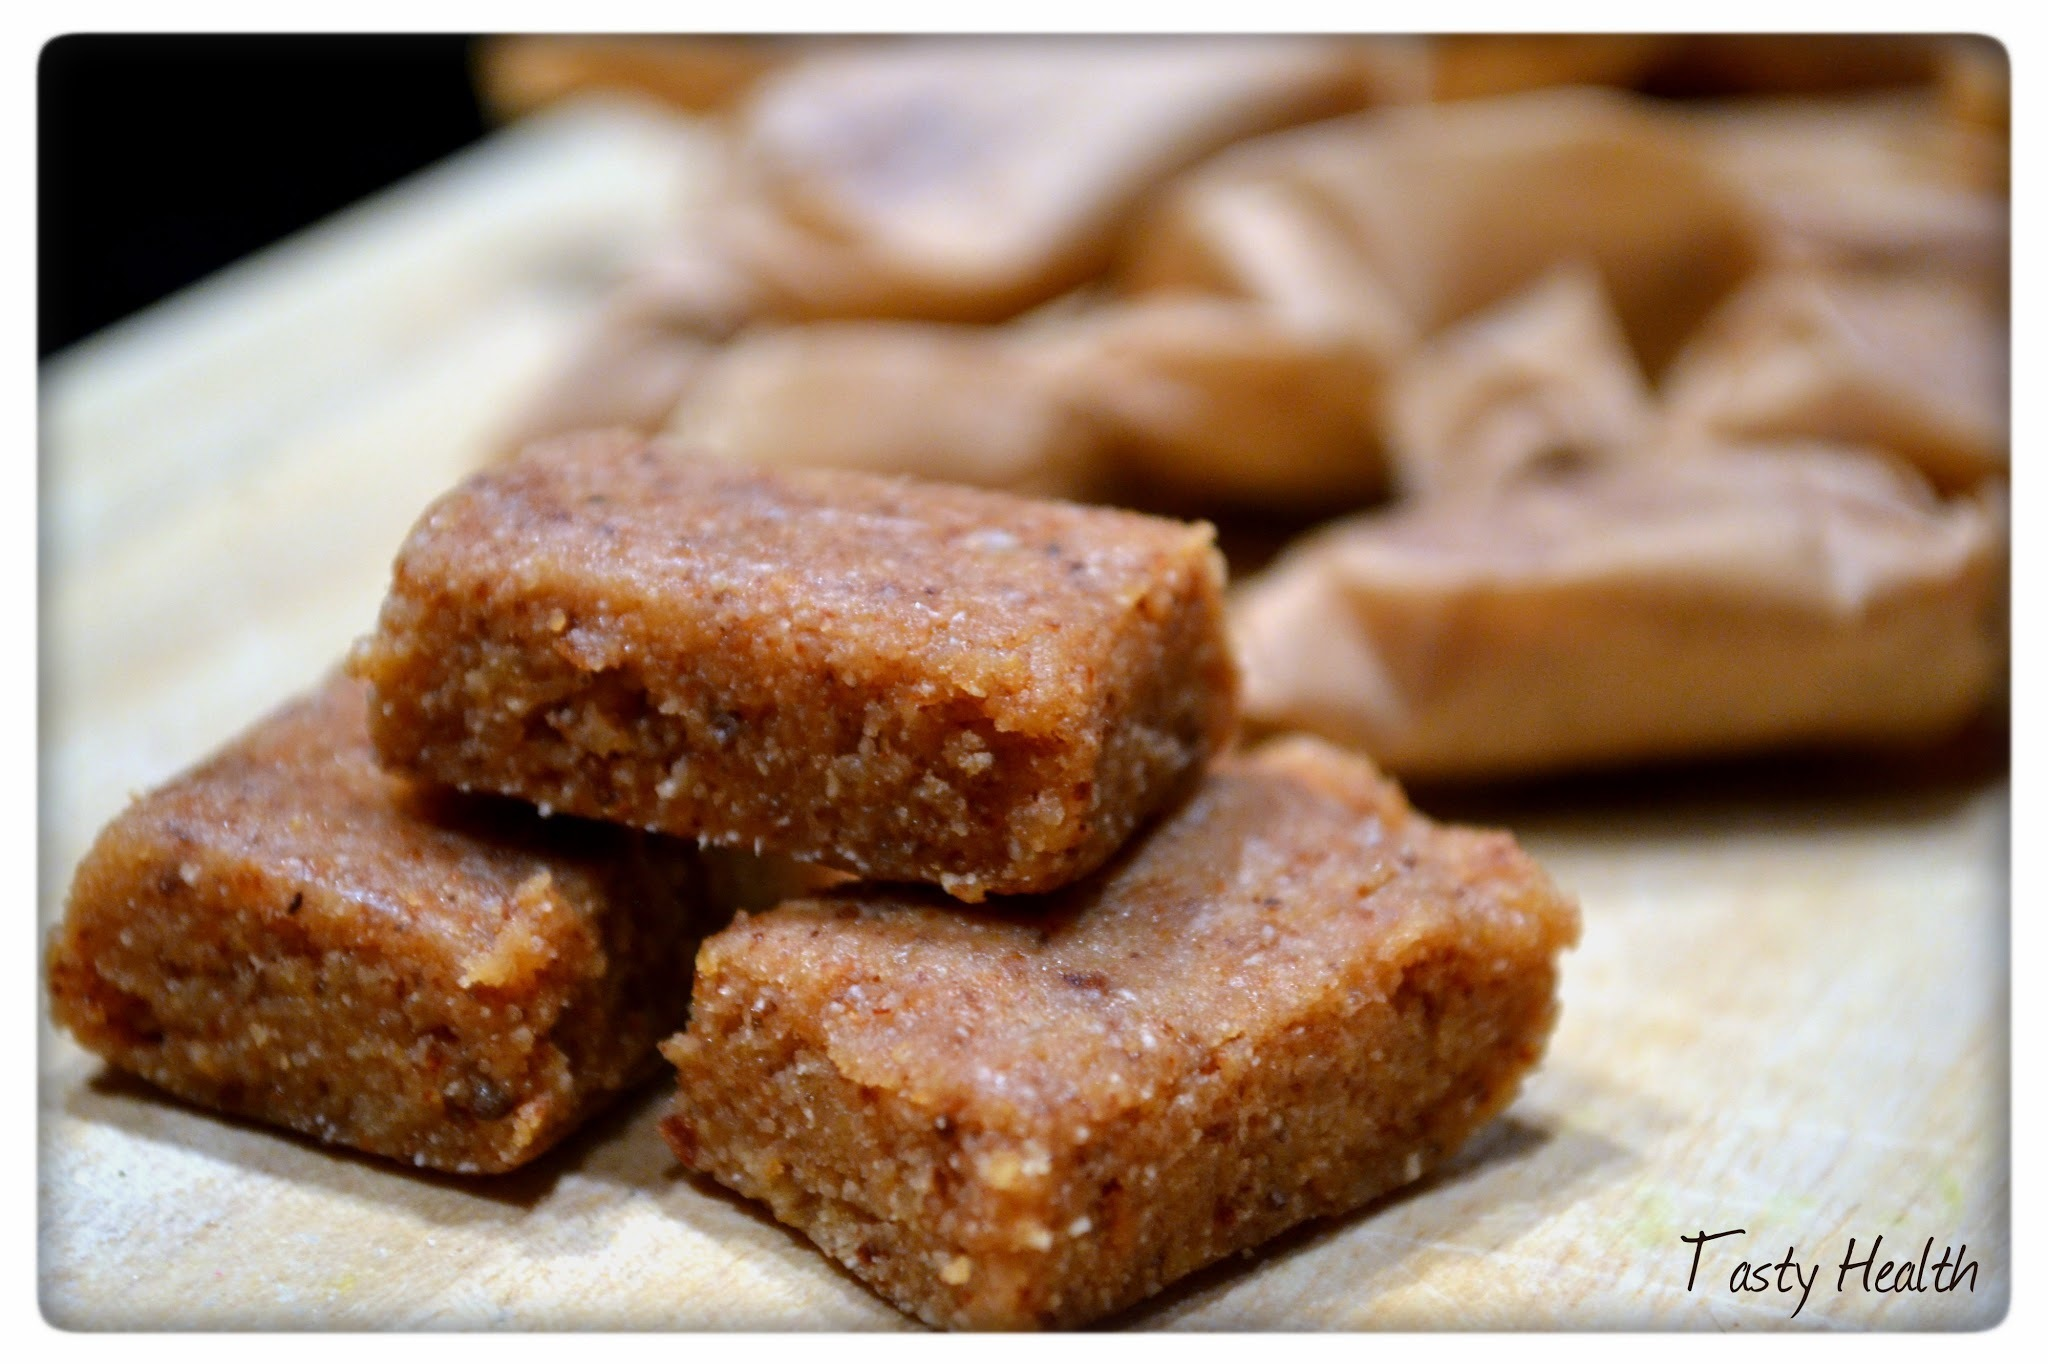 Low carb pepparkaksprotein fudge